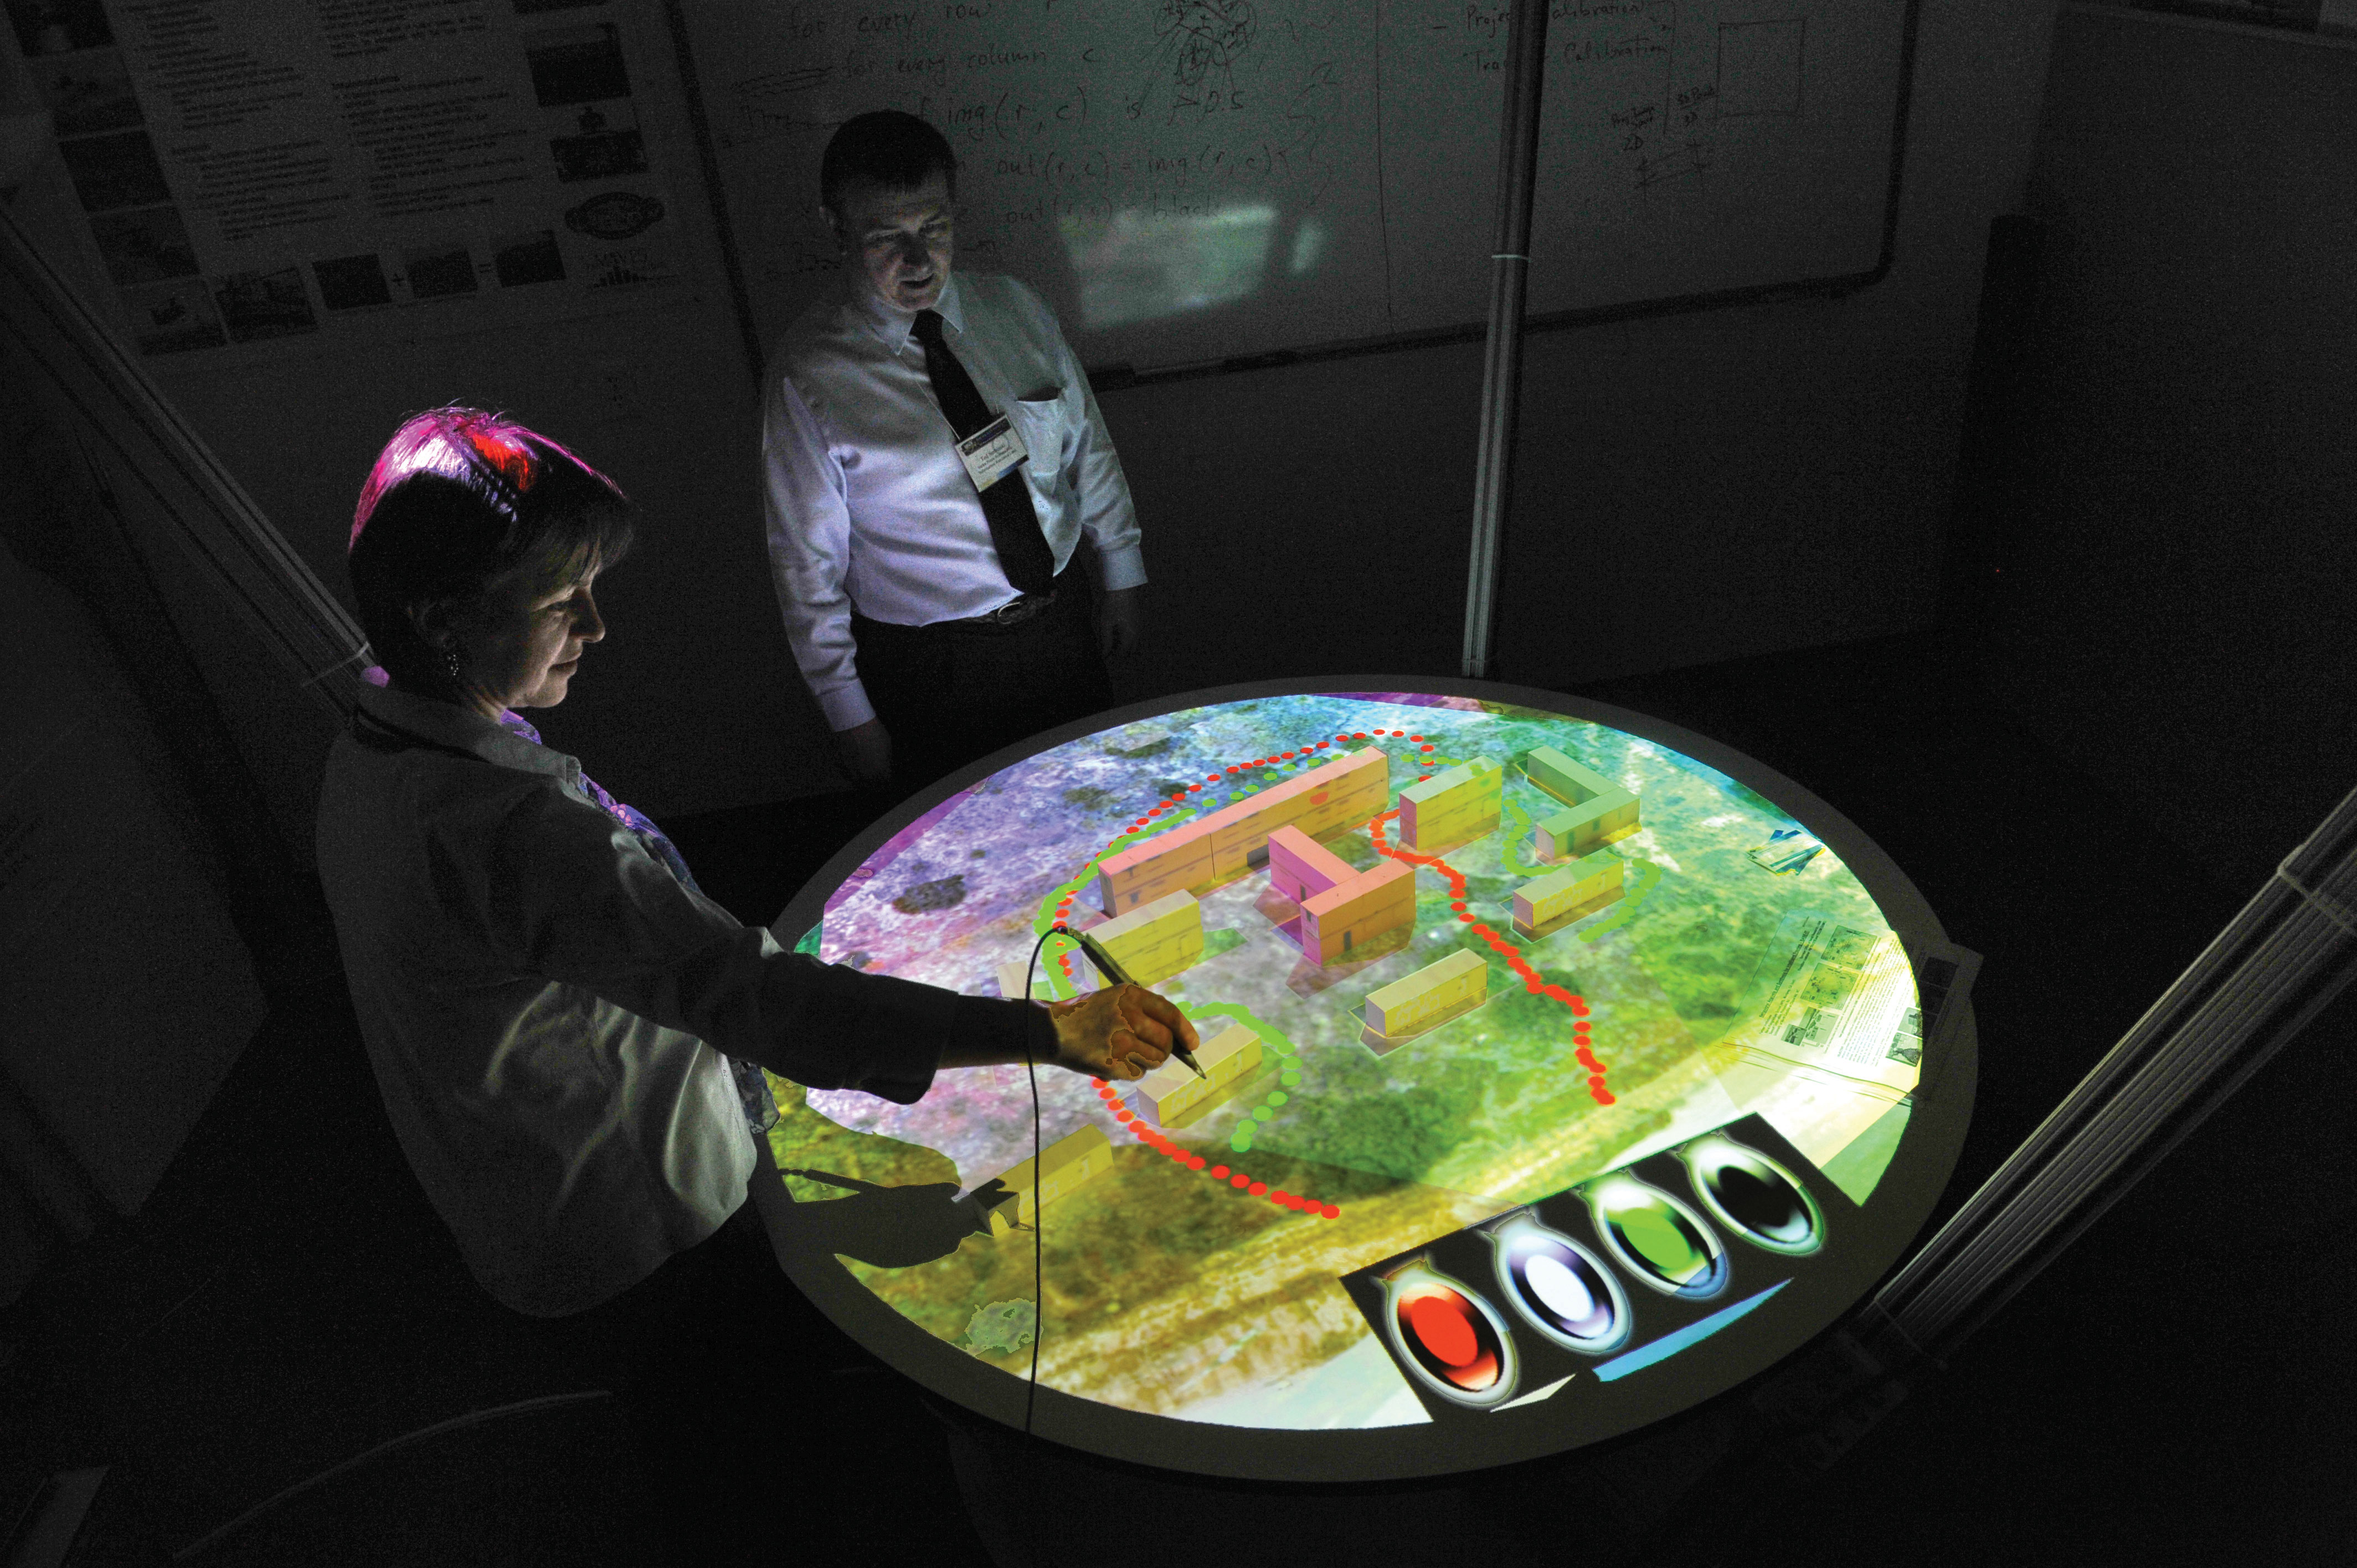 Two individuals using touchscreen technology